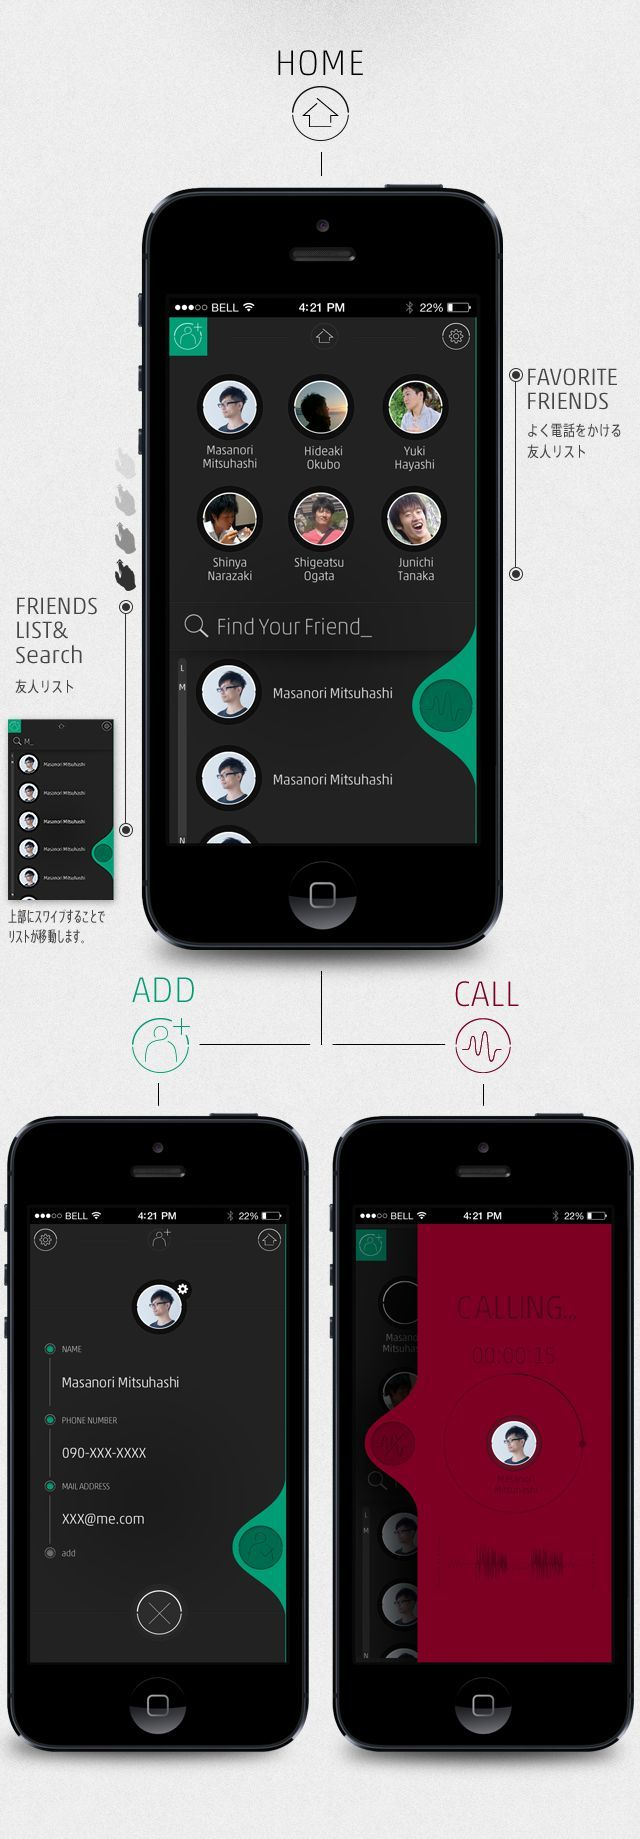 Apple. iPhone. iOS. Next Thing. Custom. Modification. Concept. Drop Calling…